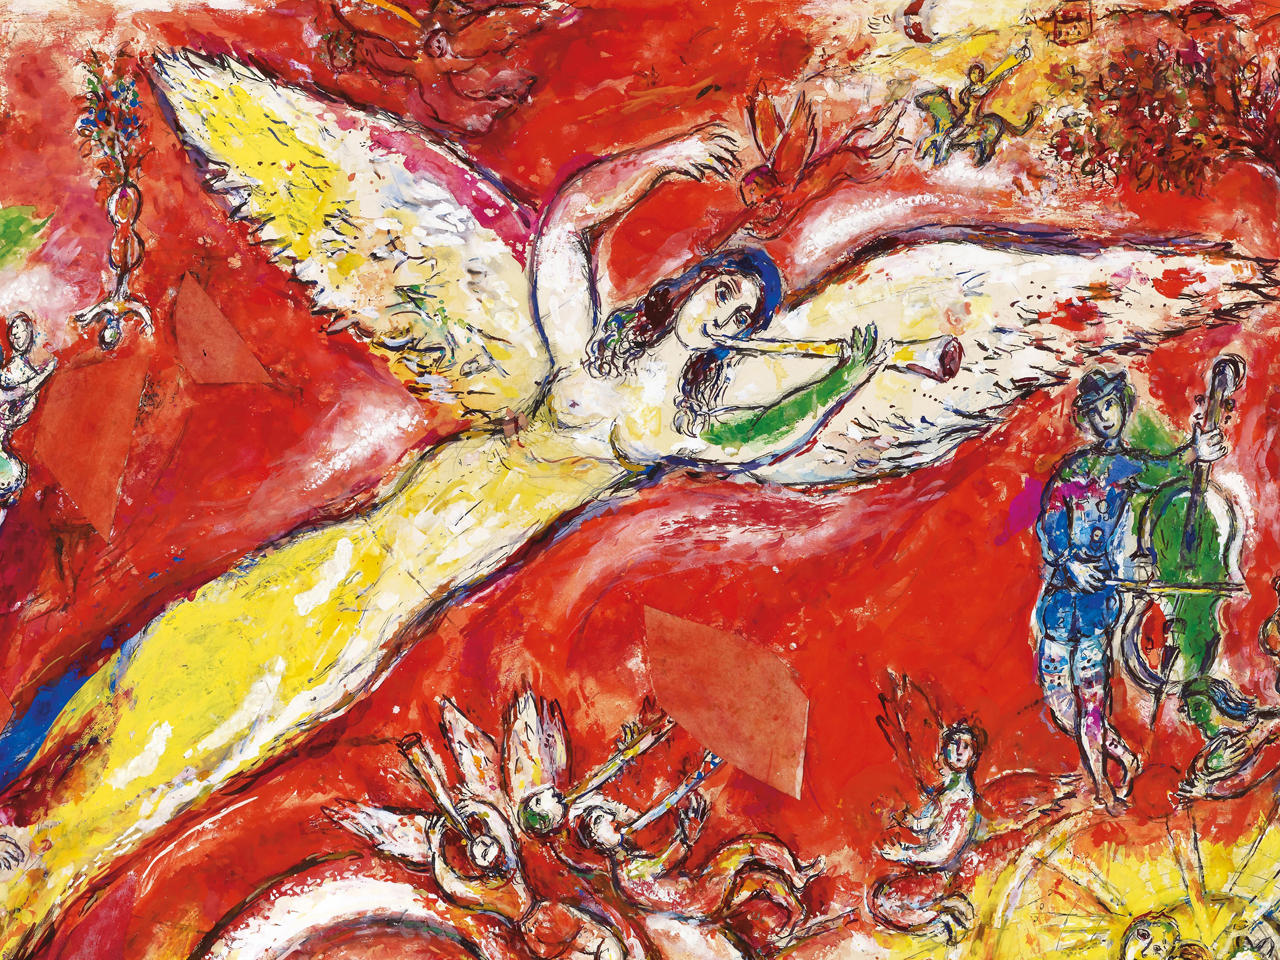 Daphnis and chloe the art of marc chagall pictures for The art of painting